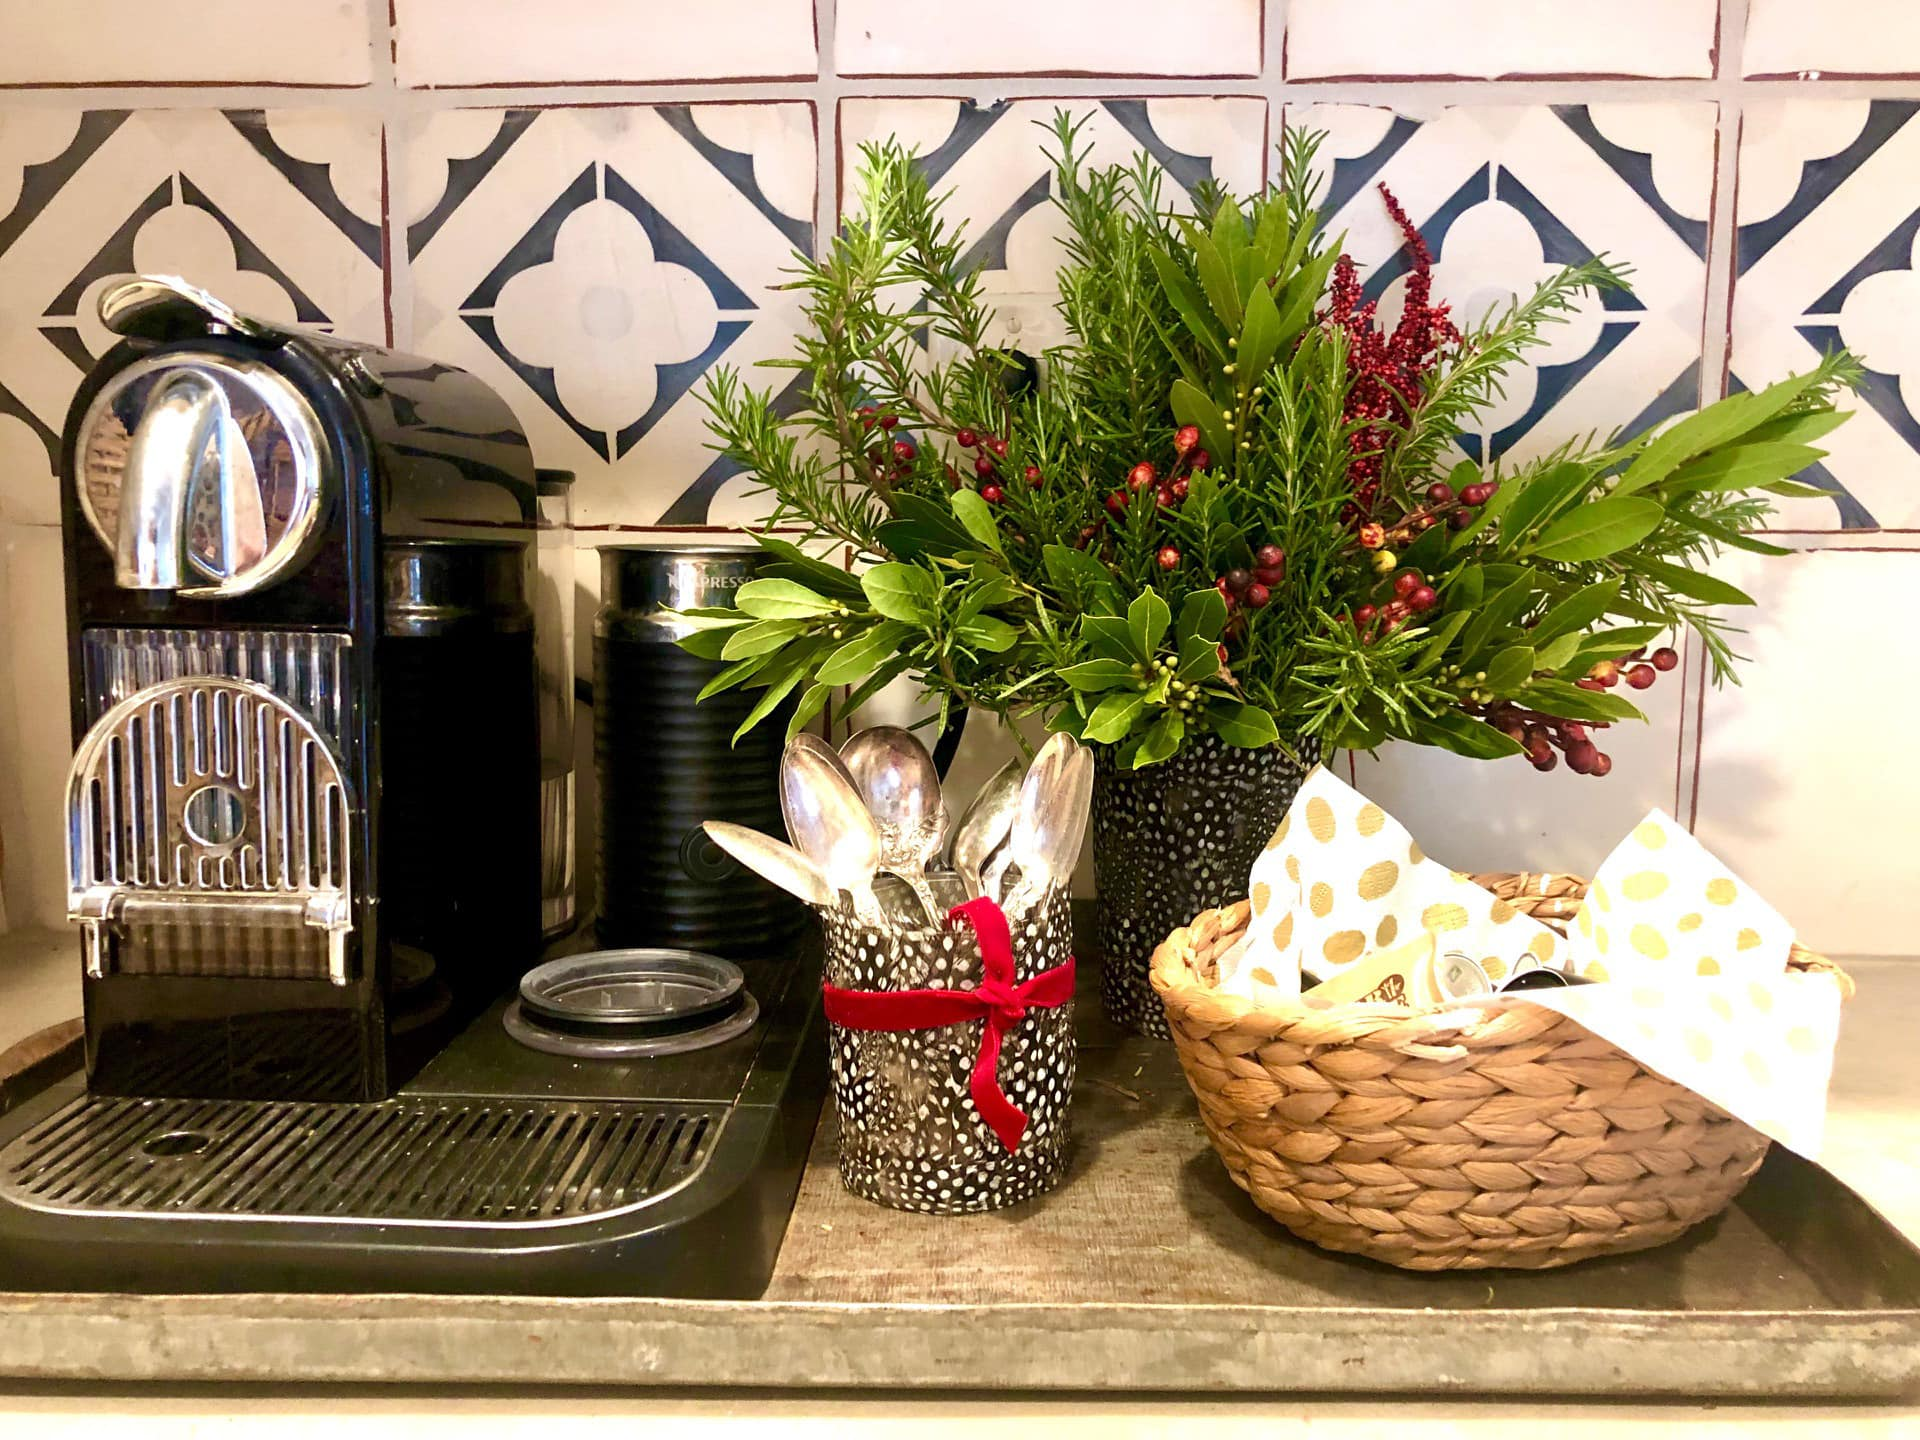 coffee station decked out for Christmas